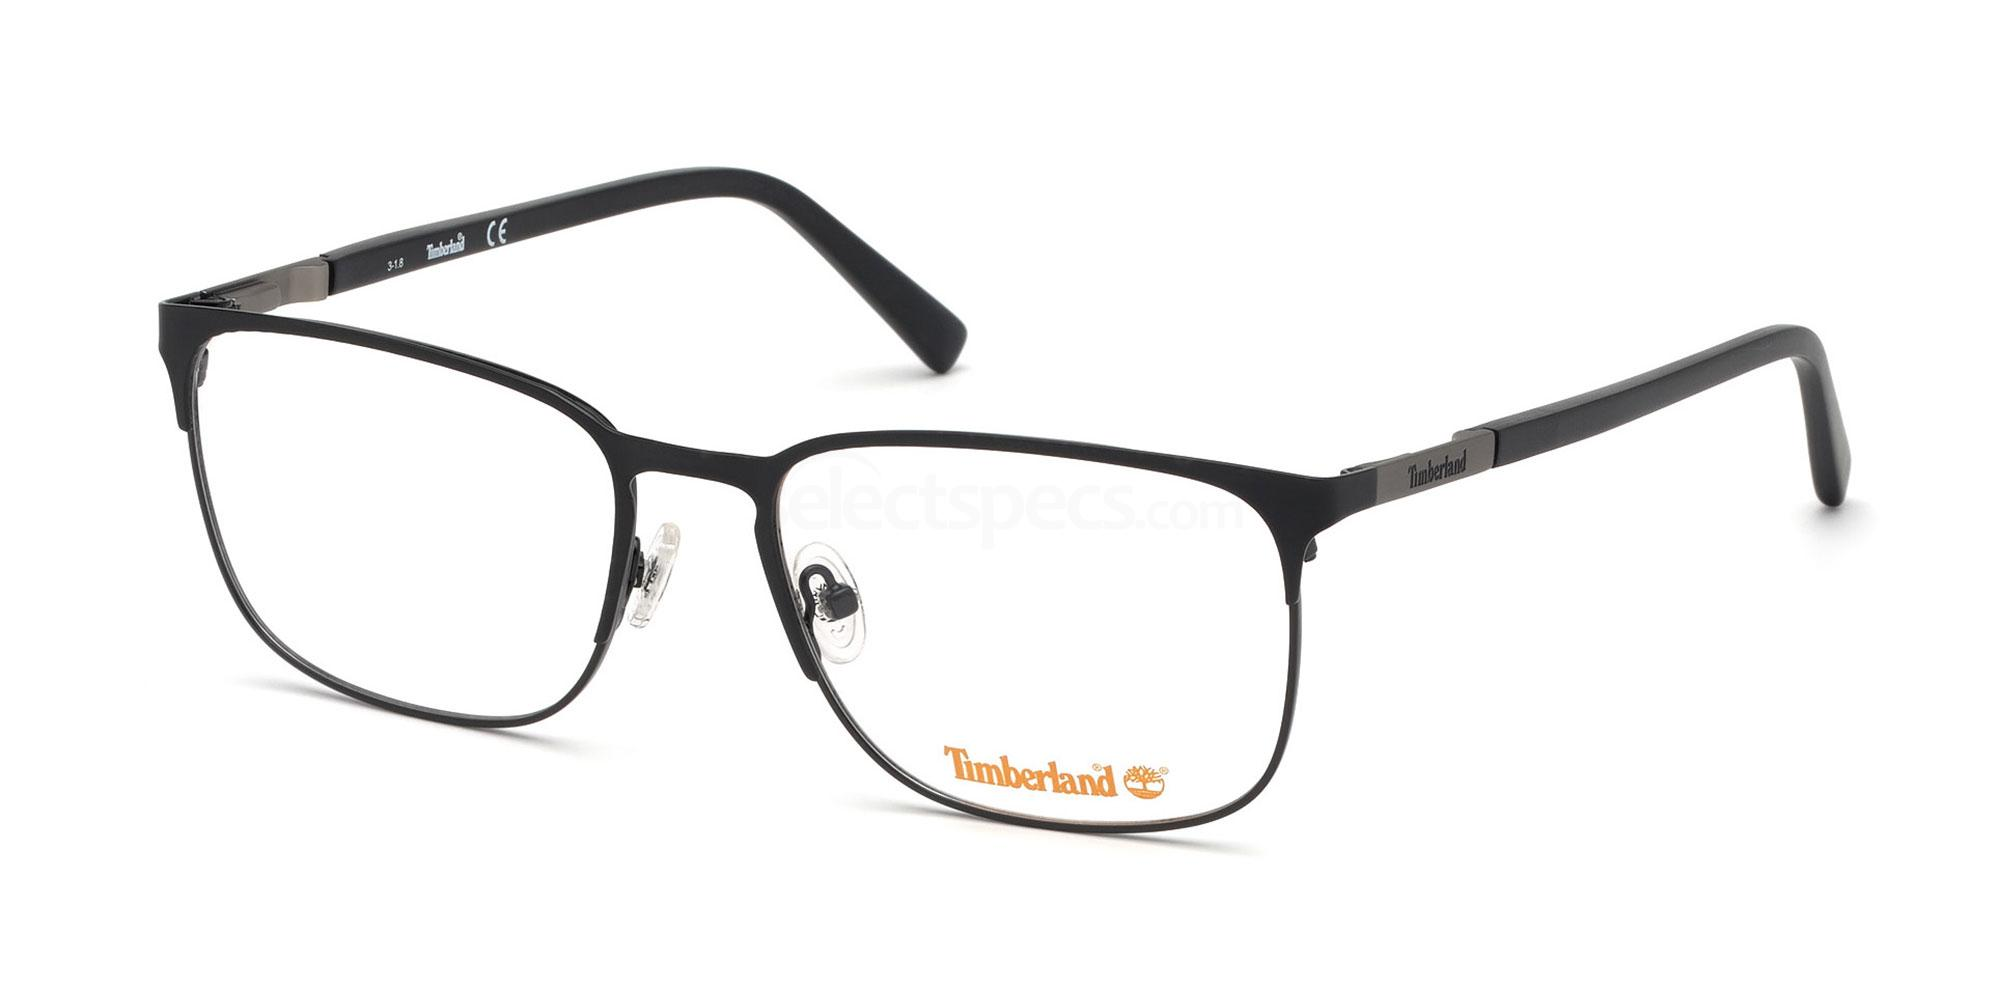 002 TB1620 Glasses, Timberland